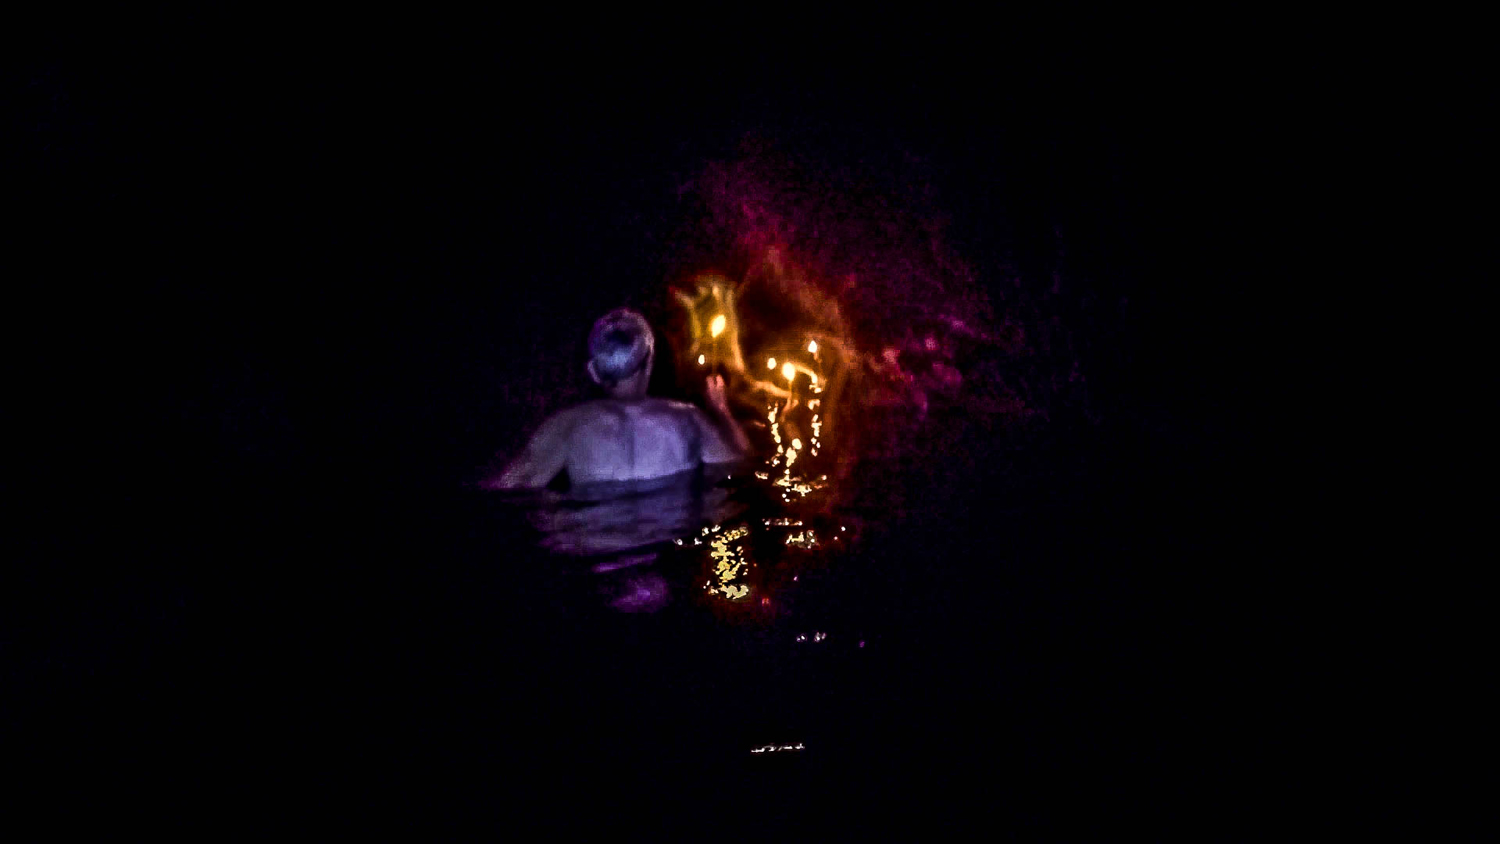 Brave 63 year old takes his daughter caving. Swimming while holding a candle is no easy task!